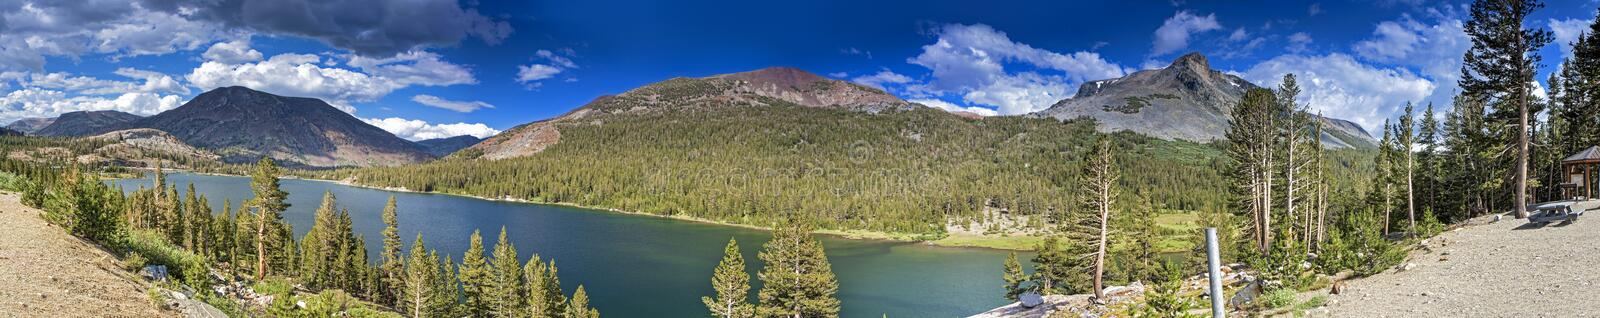 Panorama of Yosemite National Park in California, United States royalty free stock photography